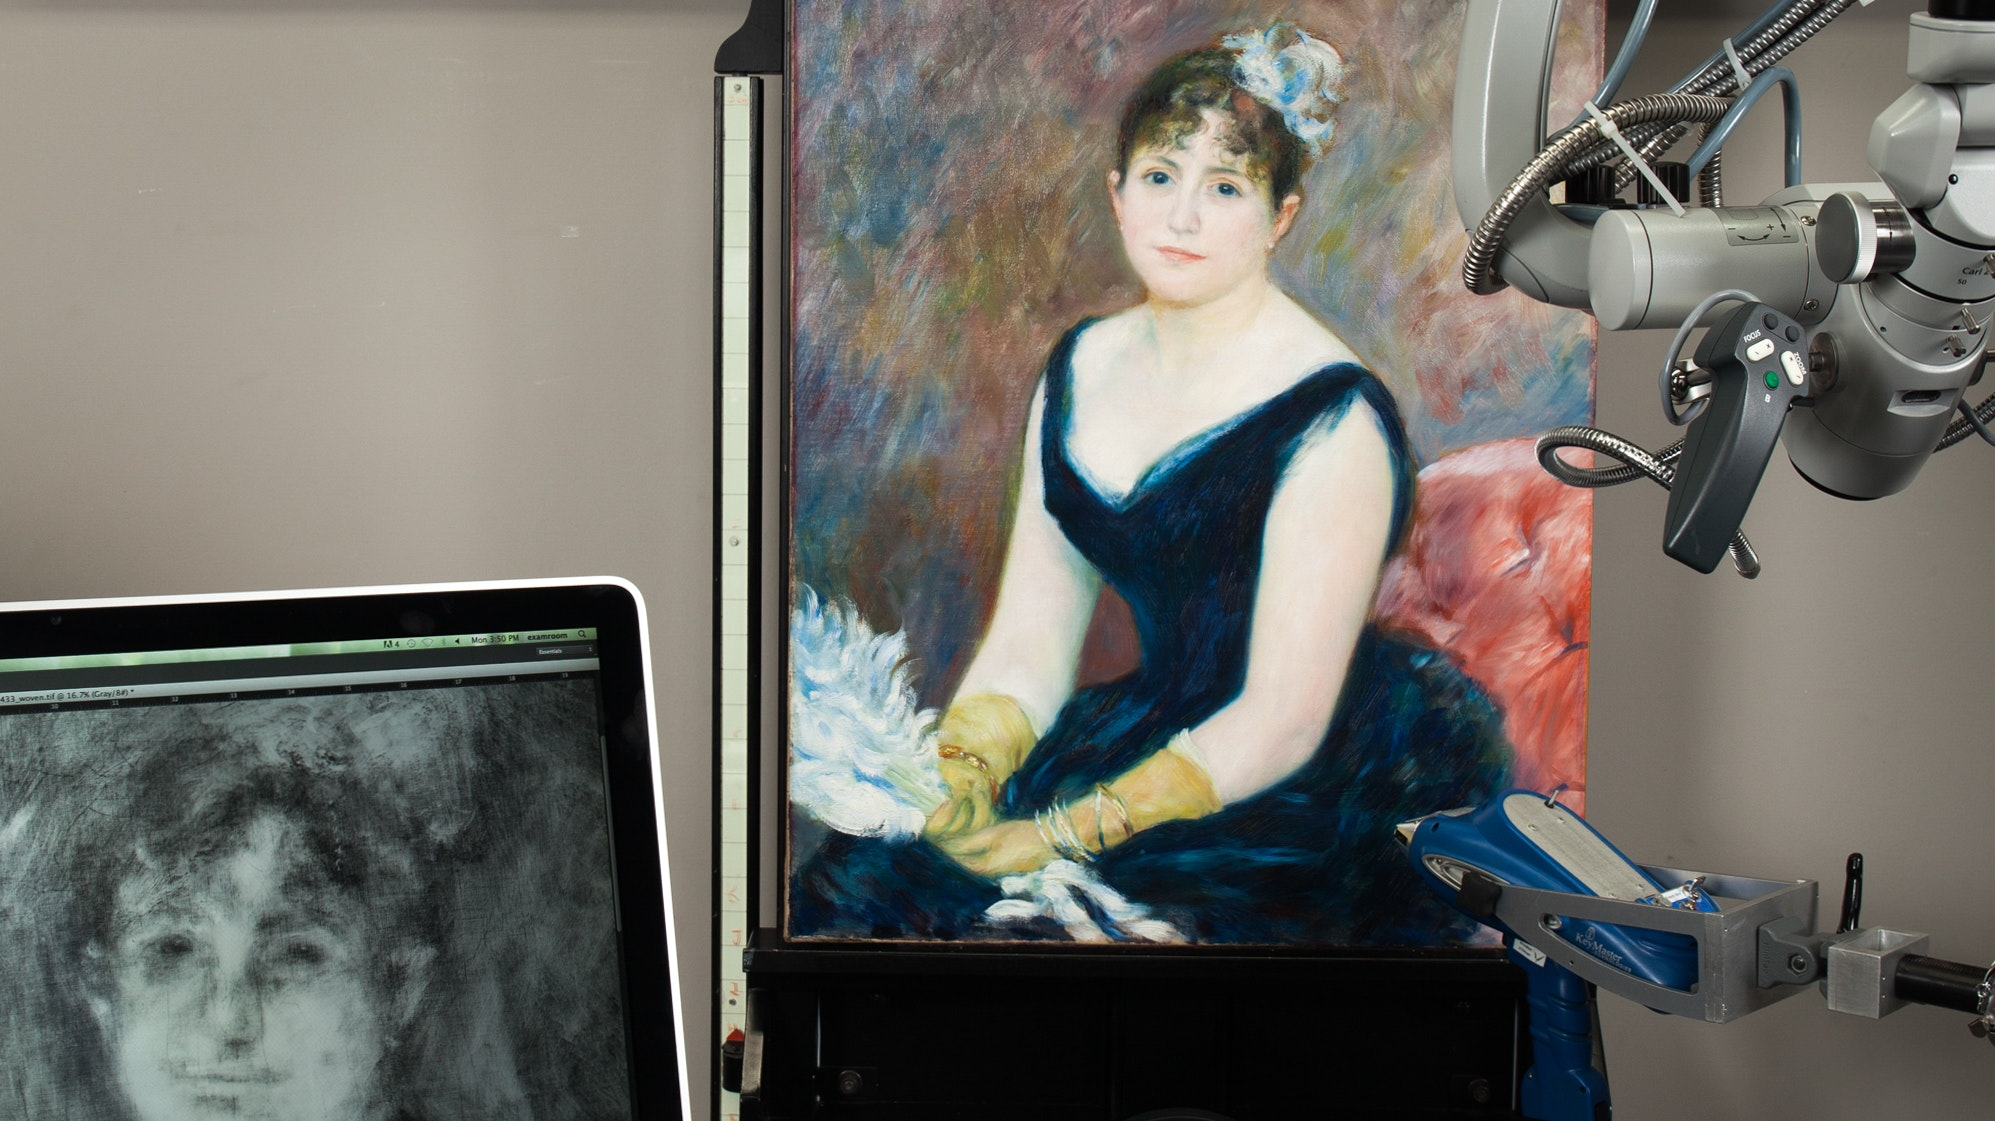 A painting is being scanned by a large machine. An alternate view of the painting is seen in an adjacent computer screen.